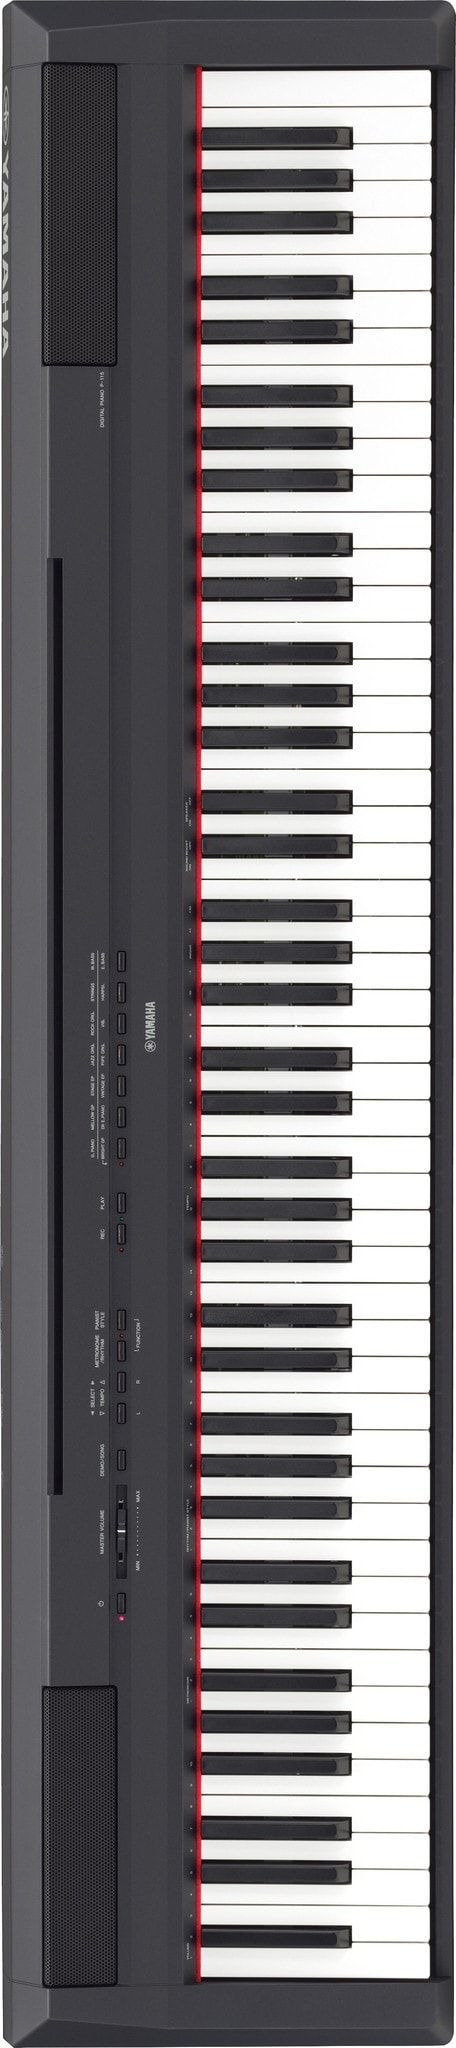 the p 115 yamaha 39 s follow up to the industry 39 s best selling digital piano now has its own app. Black Bedroom Furniture Sets. Home Design Ideas